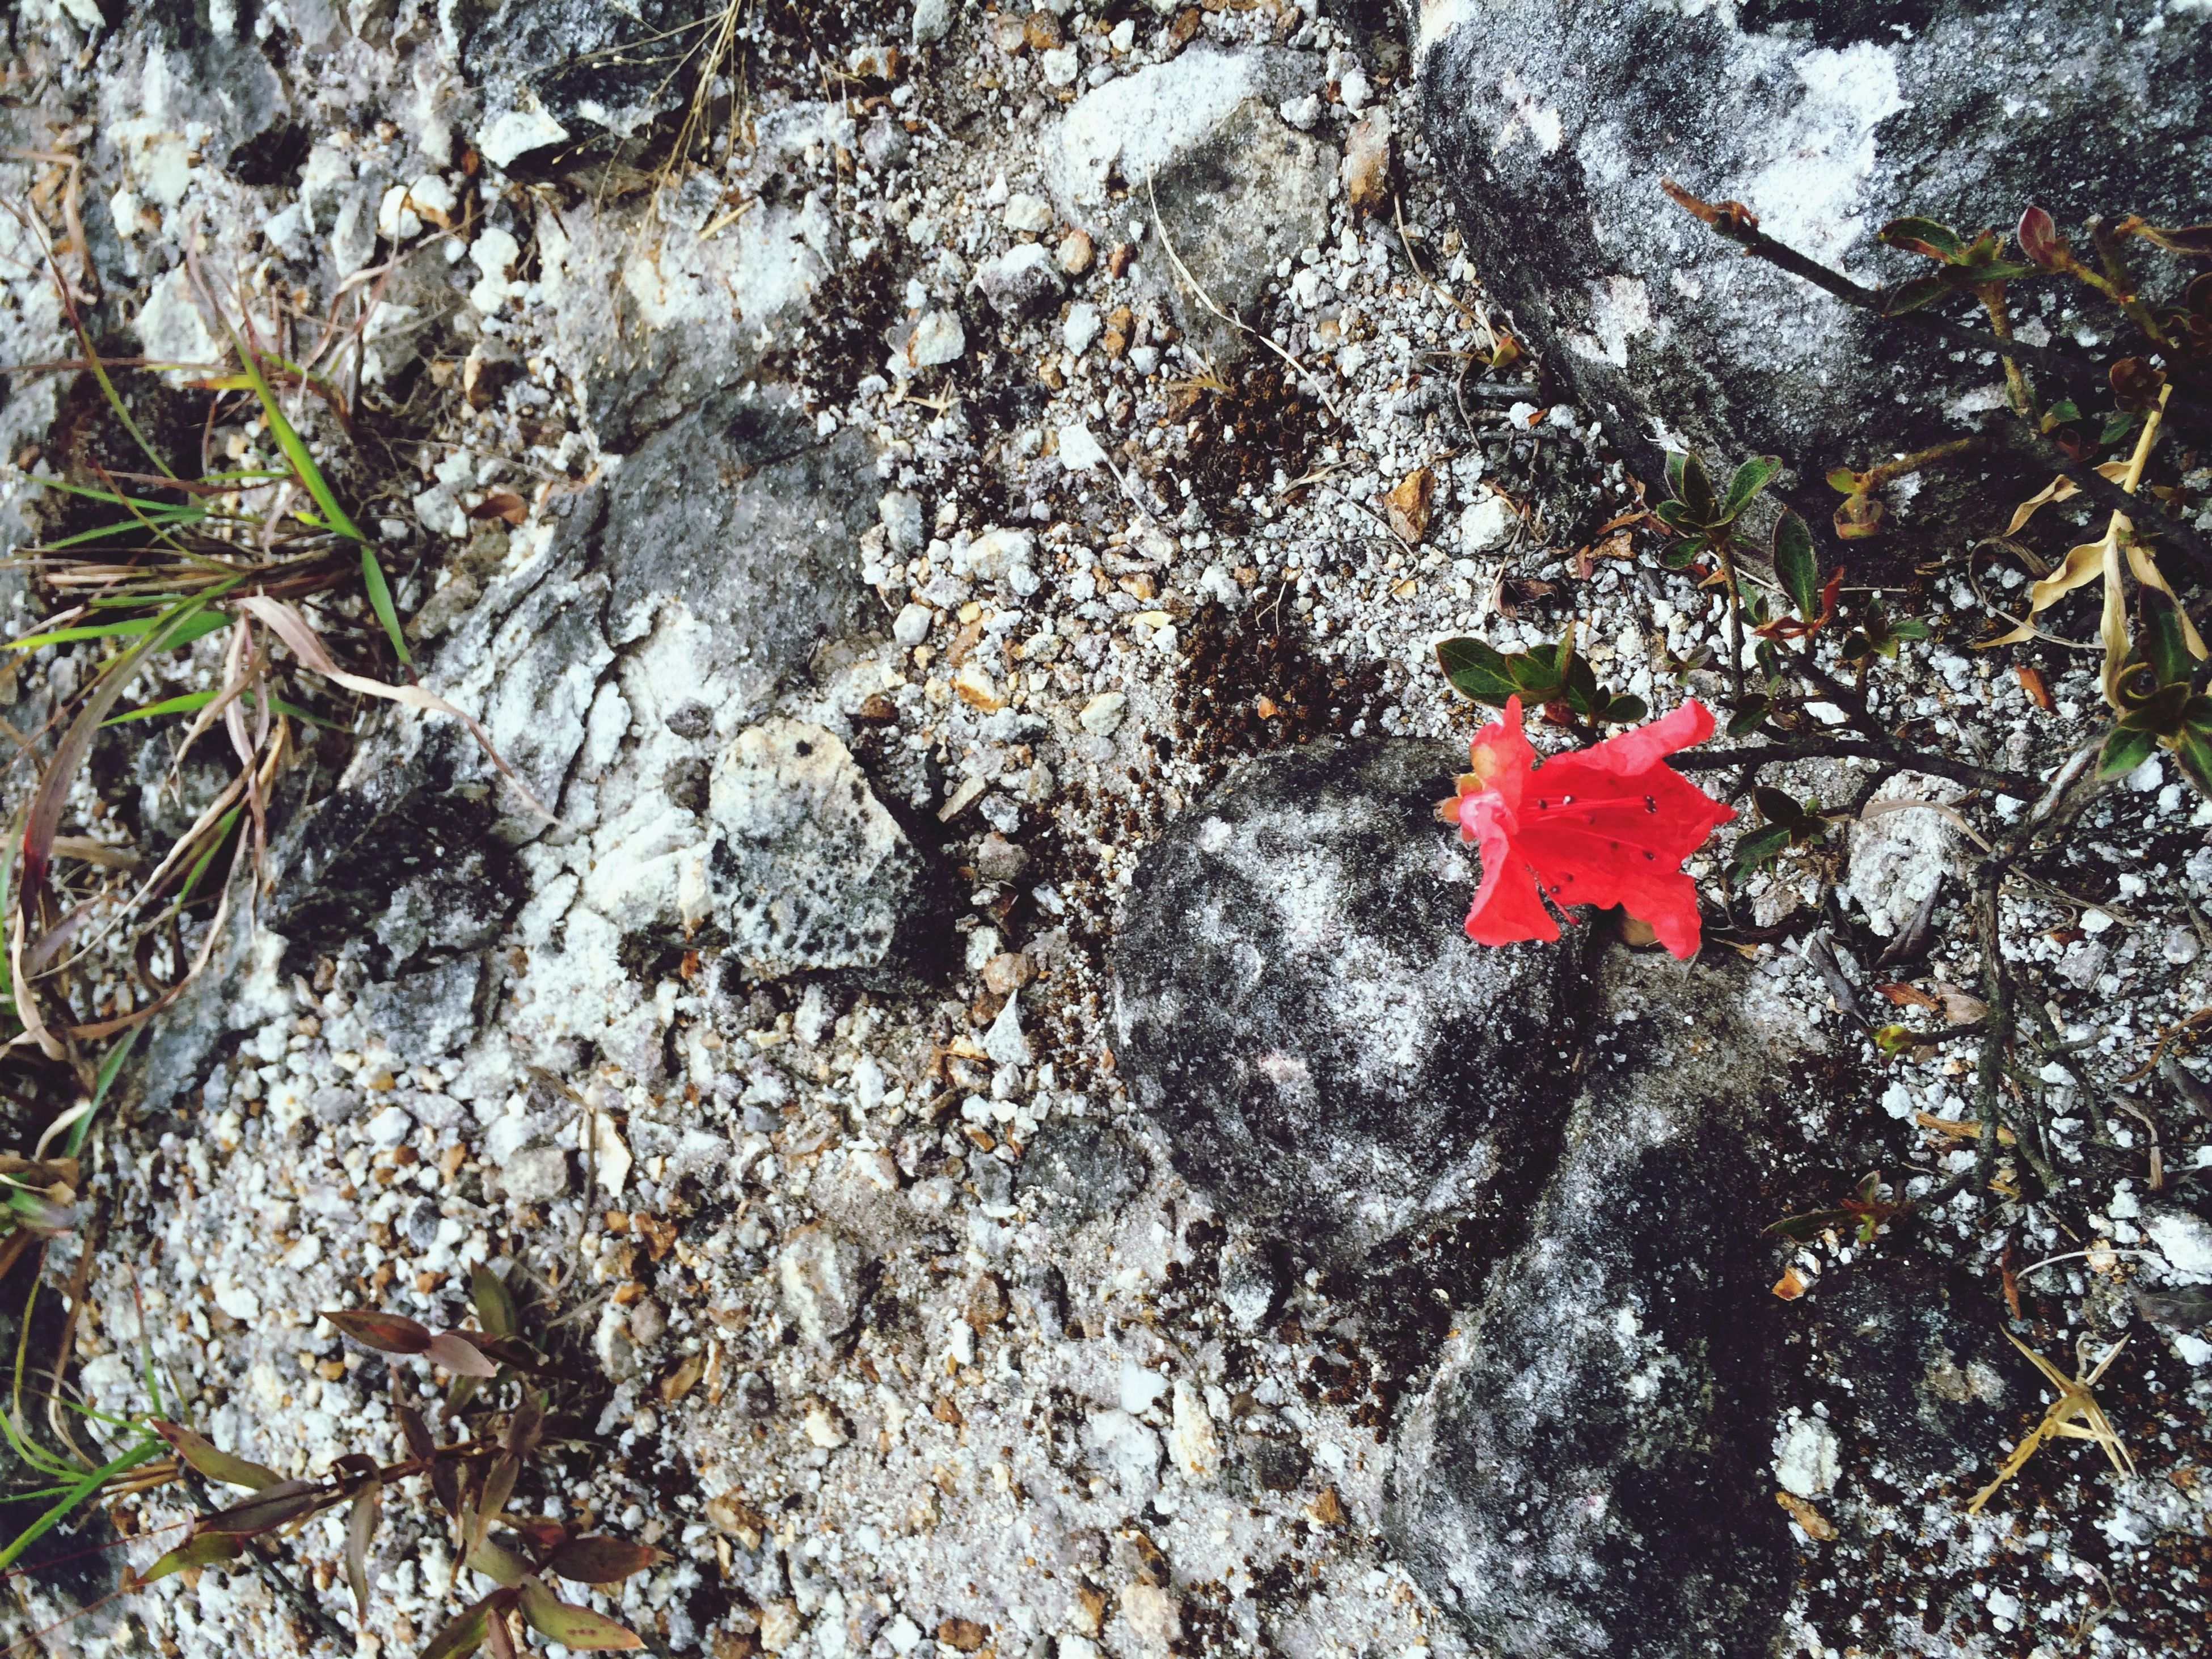 red, water, nature, rock - object, high angle view, tranquility, day, beauty in nature, tree, outdoors, growth, no people, sunlight, plant, leaf, forest, tranquil scene, close-up, rock, tree trunk